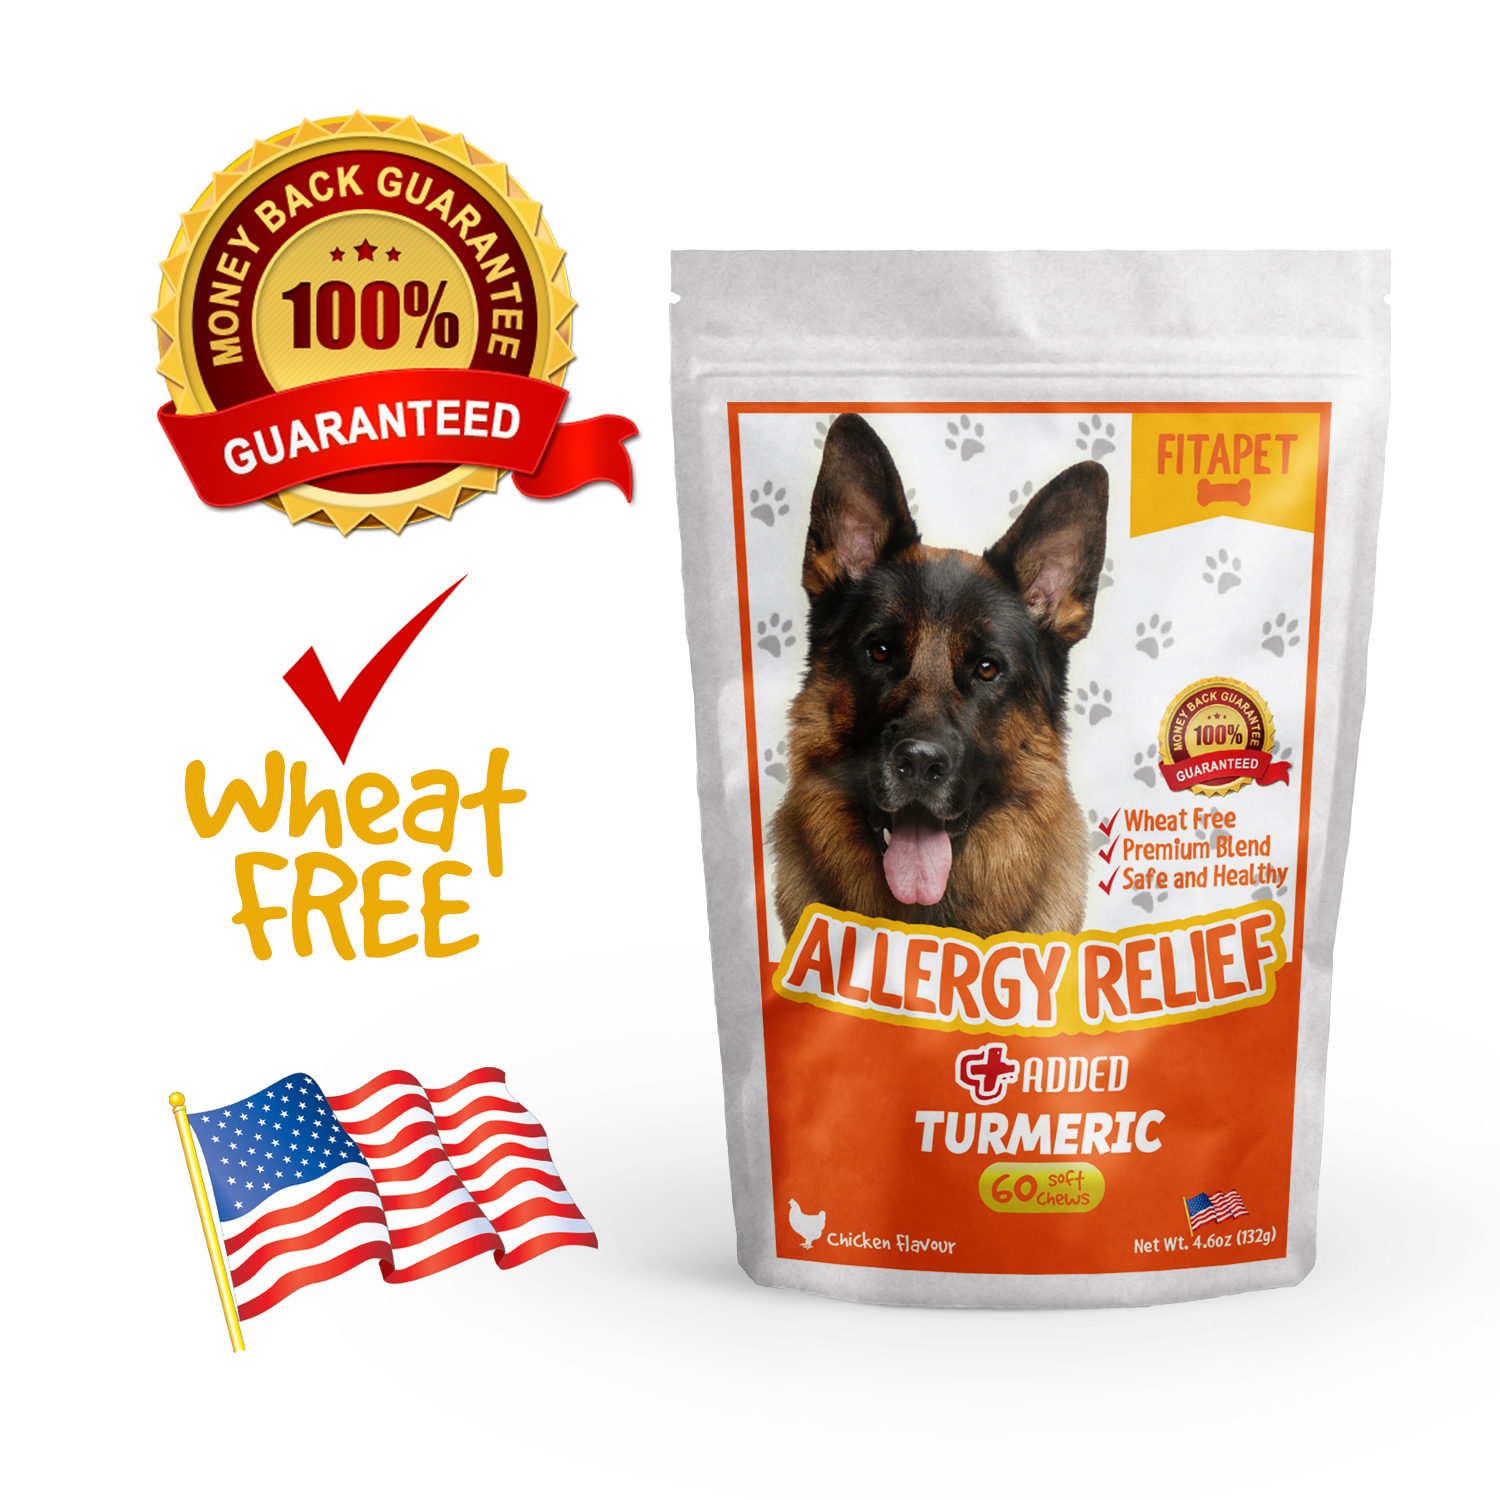 Wheat Free and Made in USA